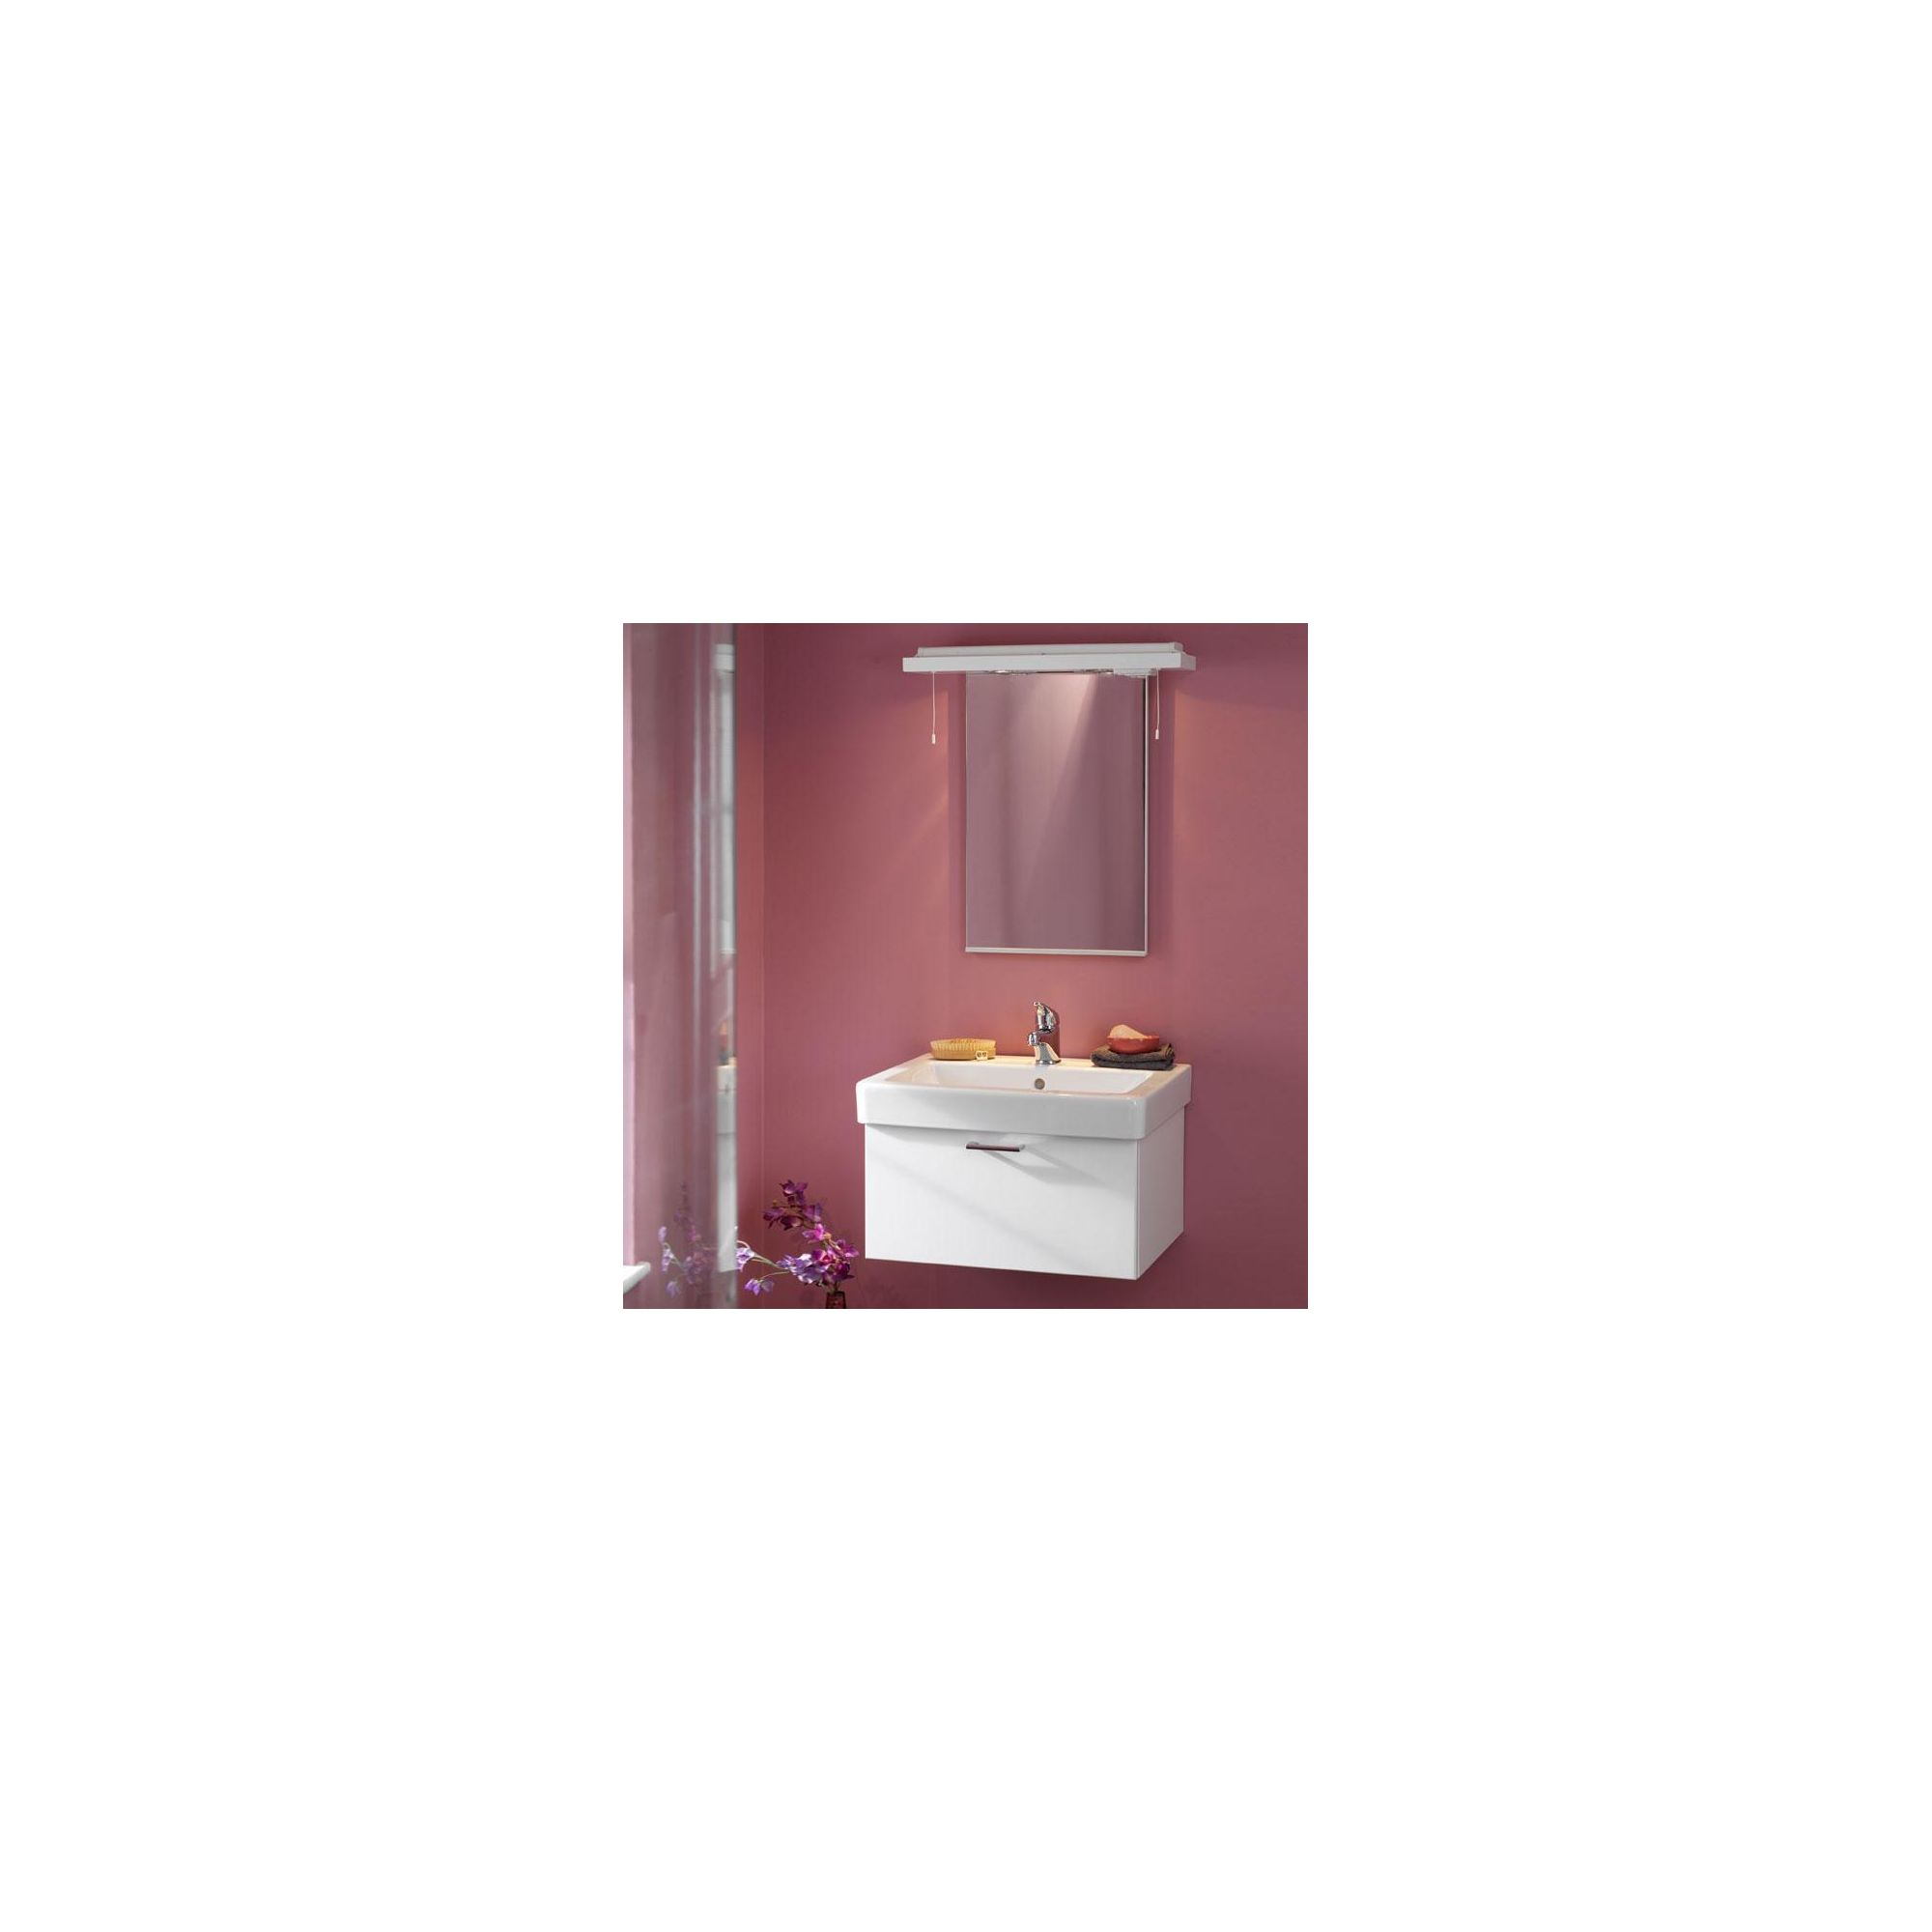 Duchy Trerise White Wall Hung 1 Drawer Vanity Unit and Basin - 600mm Wide x 445mm Deep including Mirror and Cornice